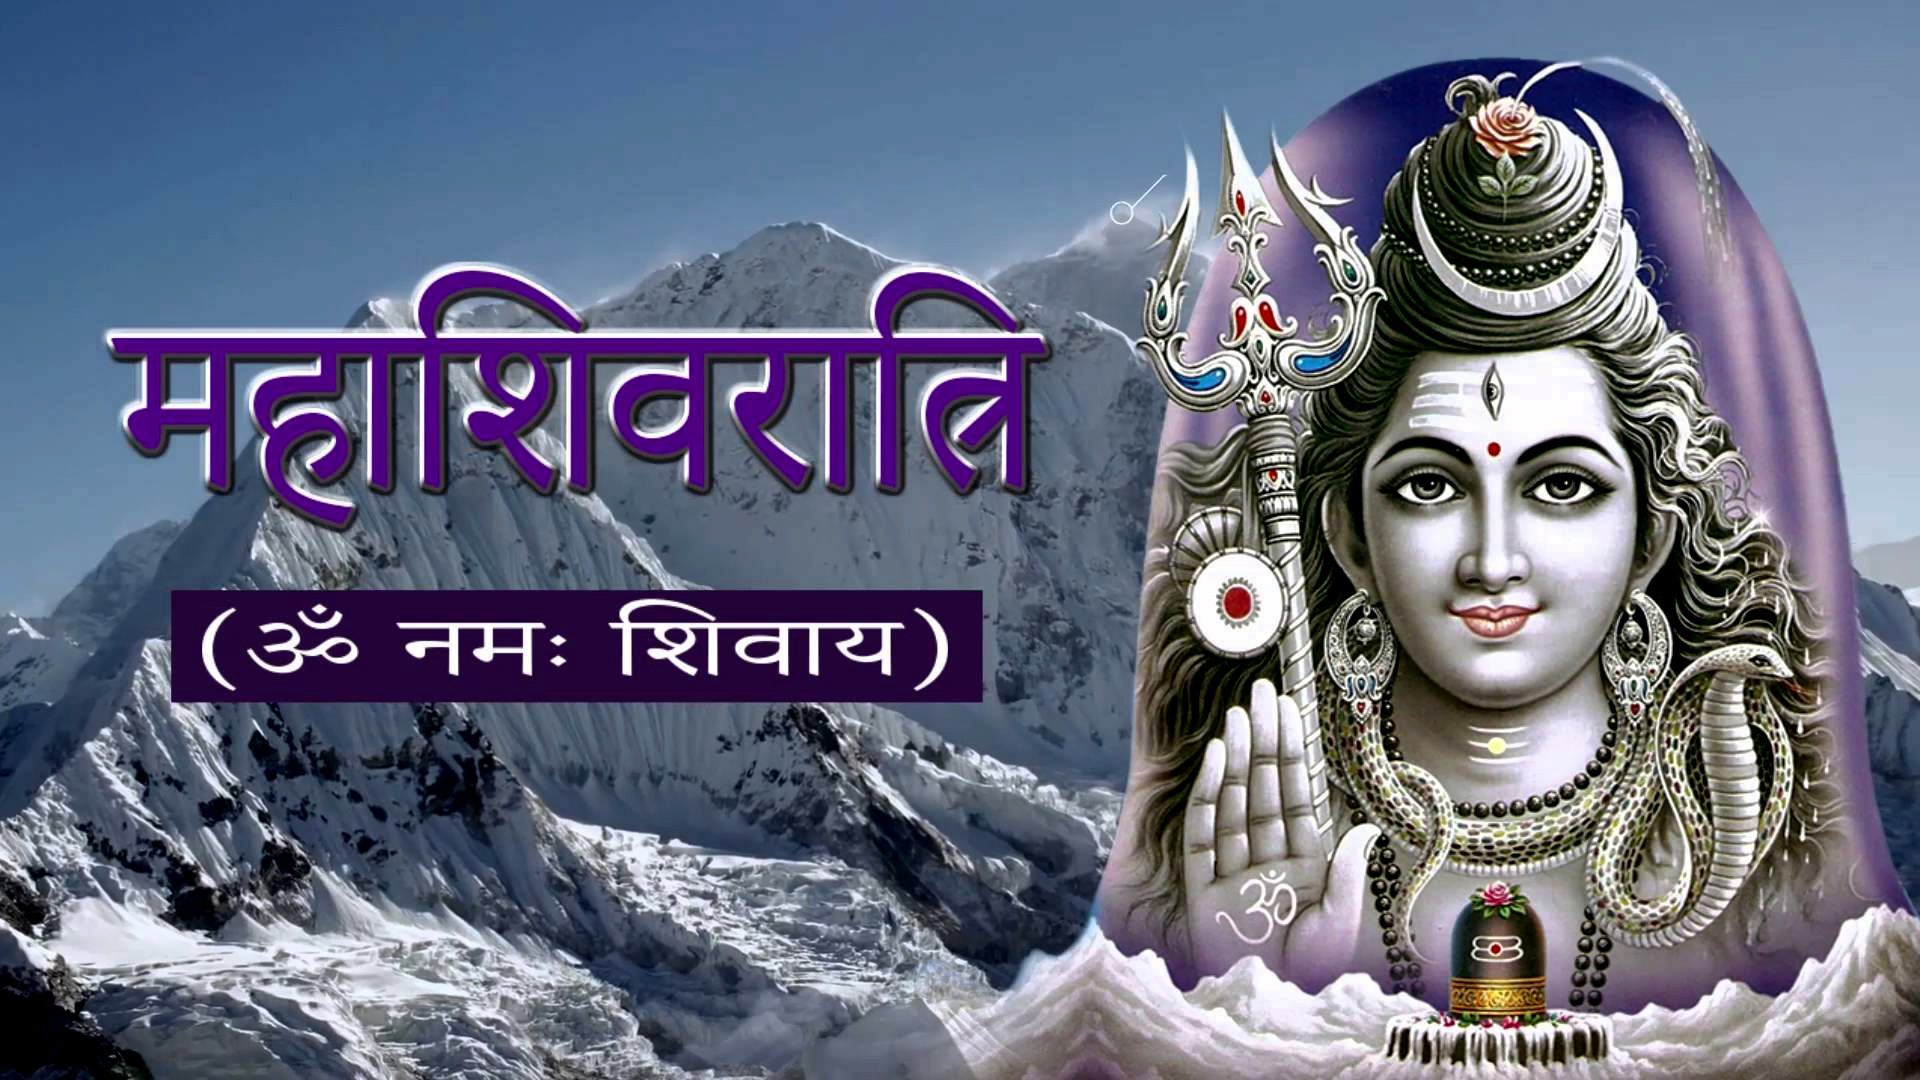 Shivratri Images With Quotes In Hindi